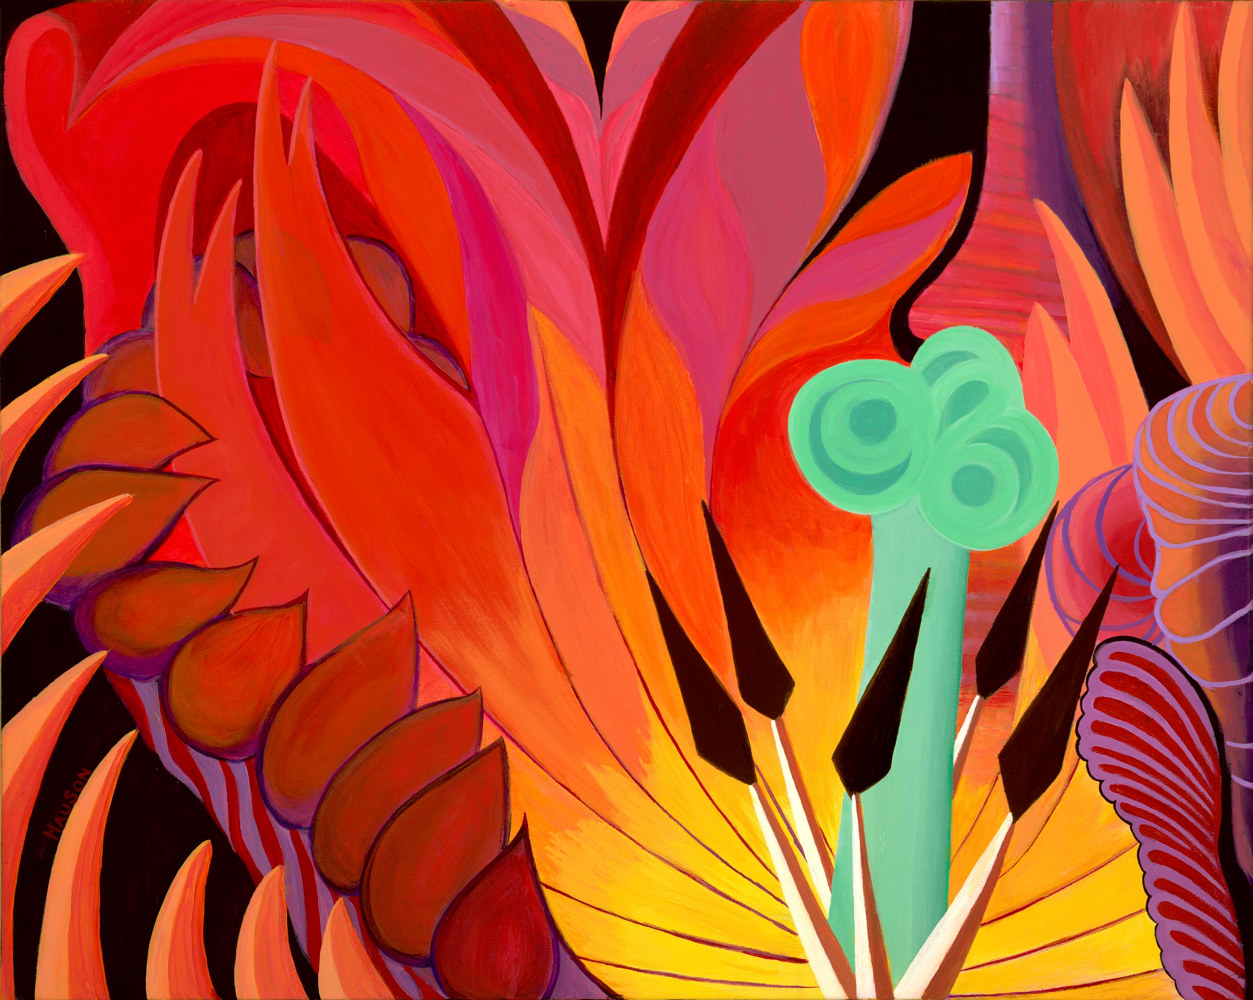 Acrylic painting TULIPOMANIA by Richard Robertson